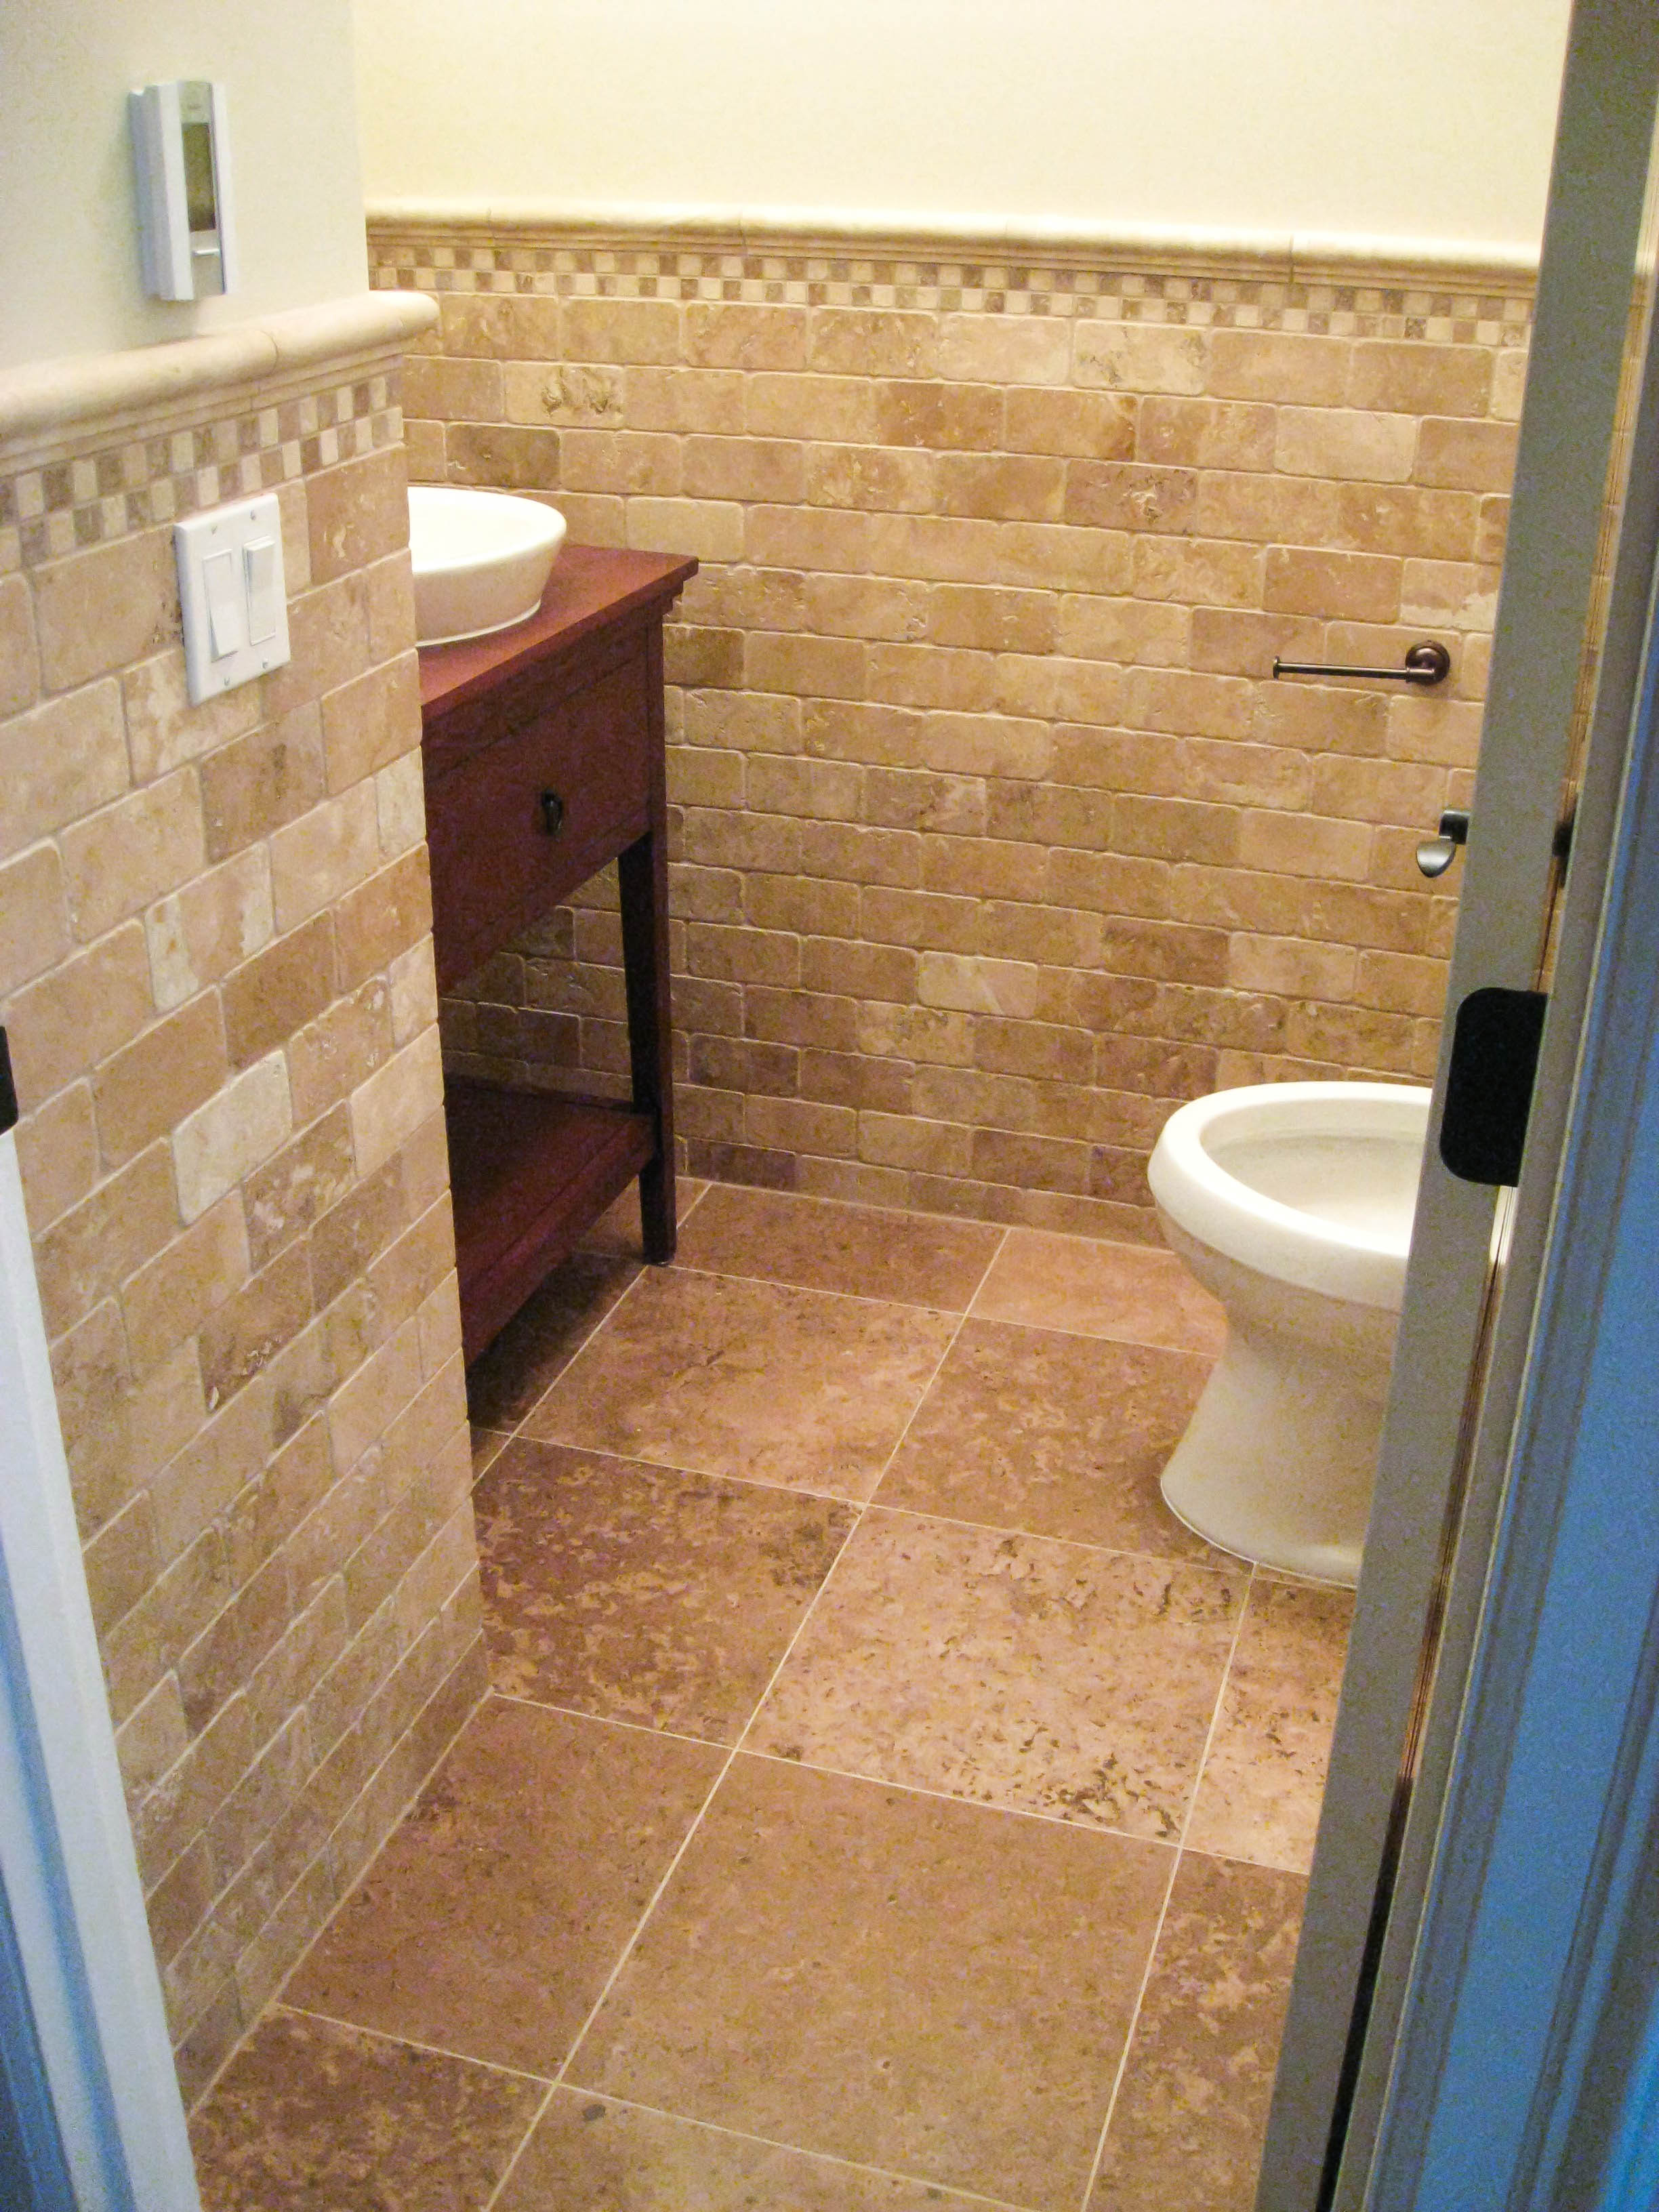 Bathroom wainscoting gallery tile contractor irc tiles Bathroom tile gallery